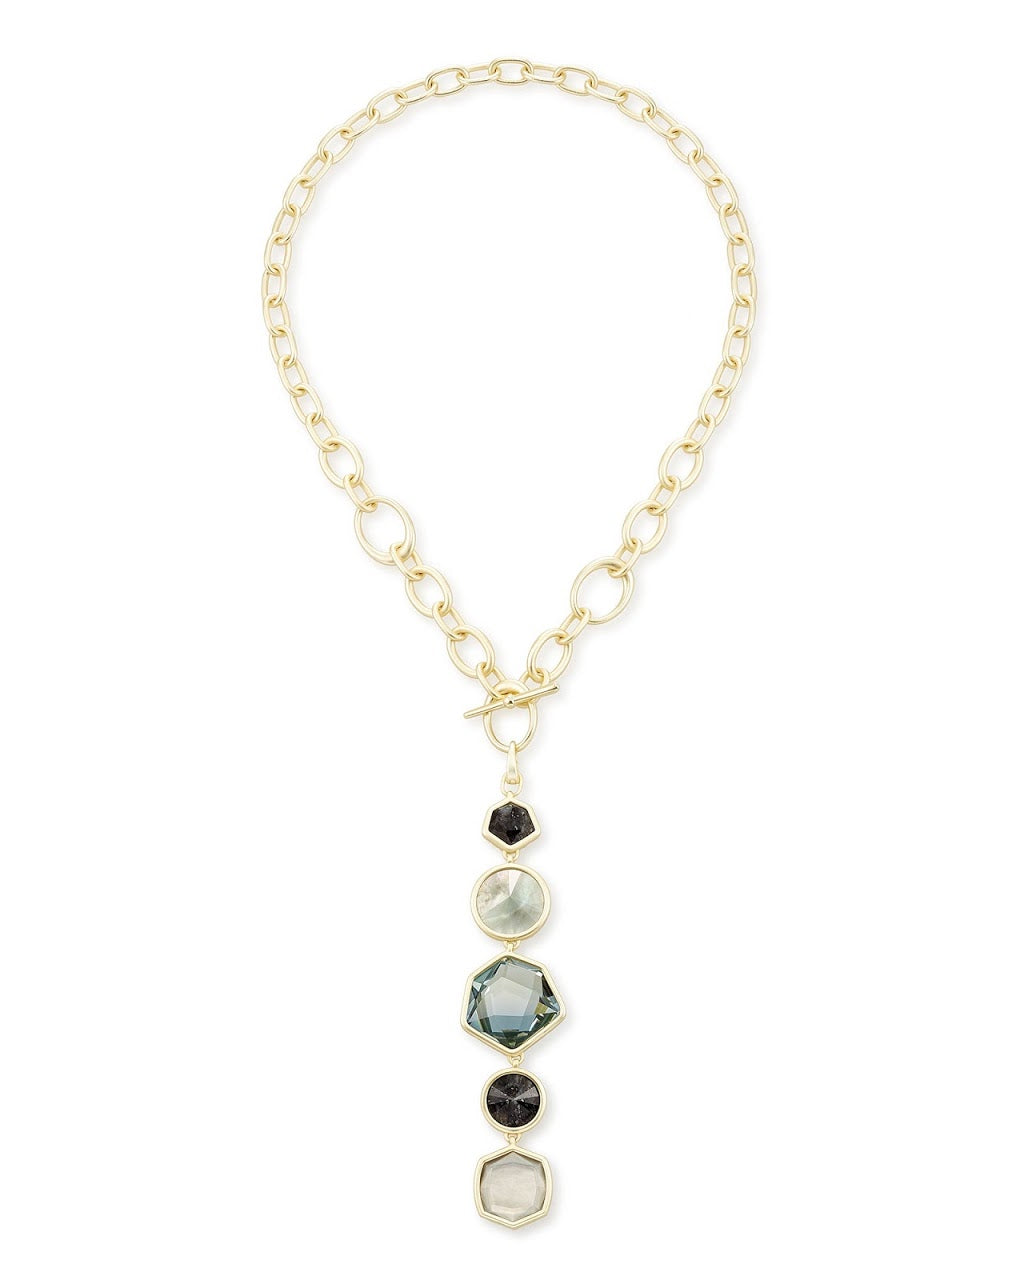 Natalia Gold Y Necklace-Steel Gray Mix